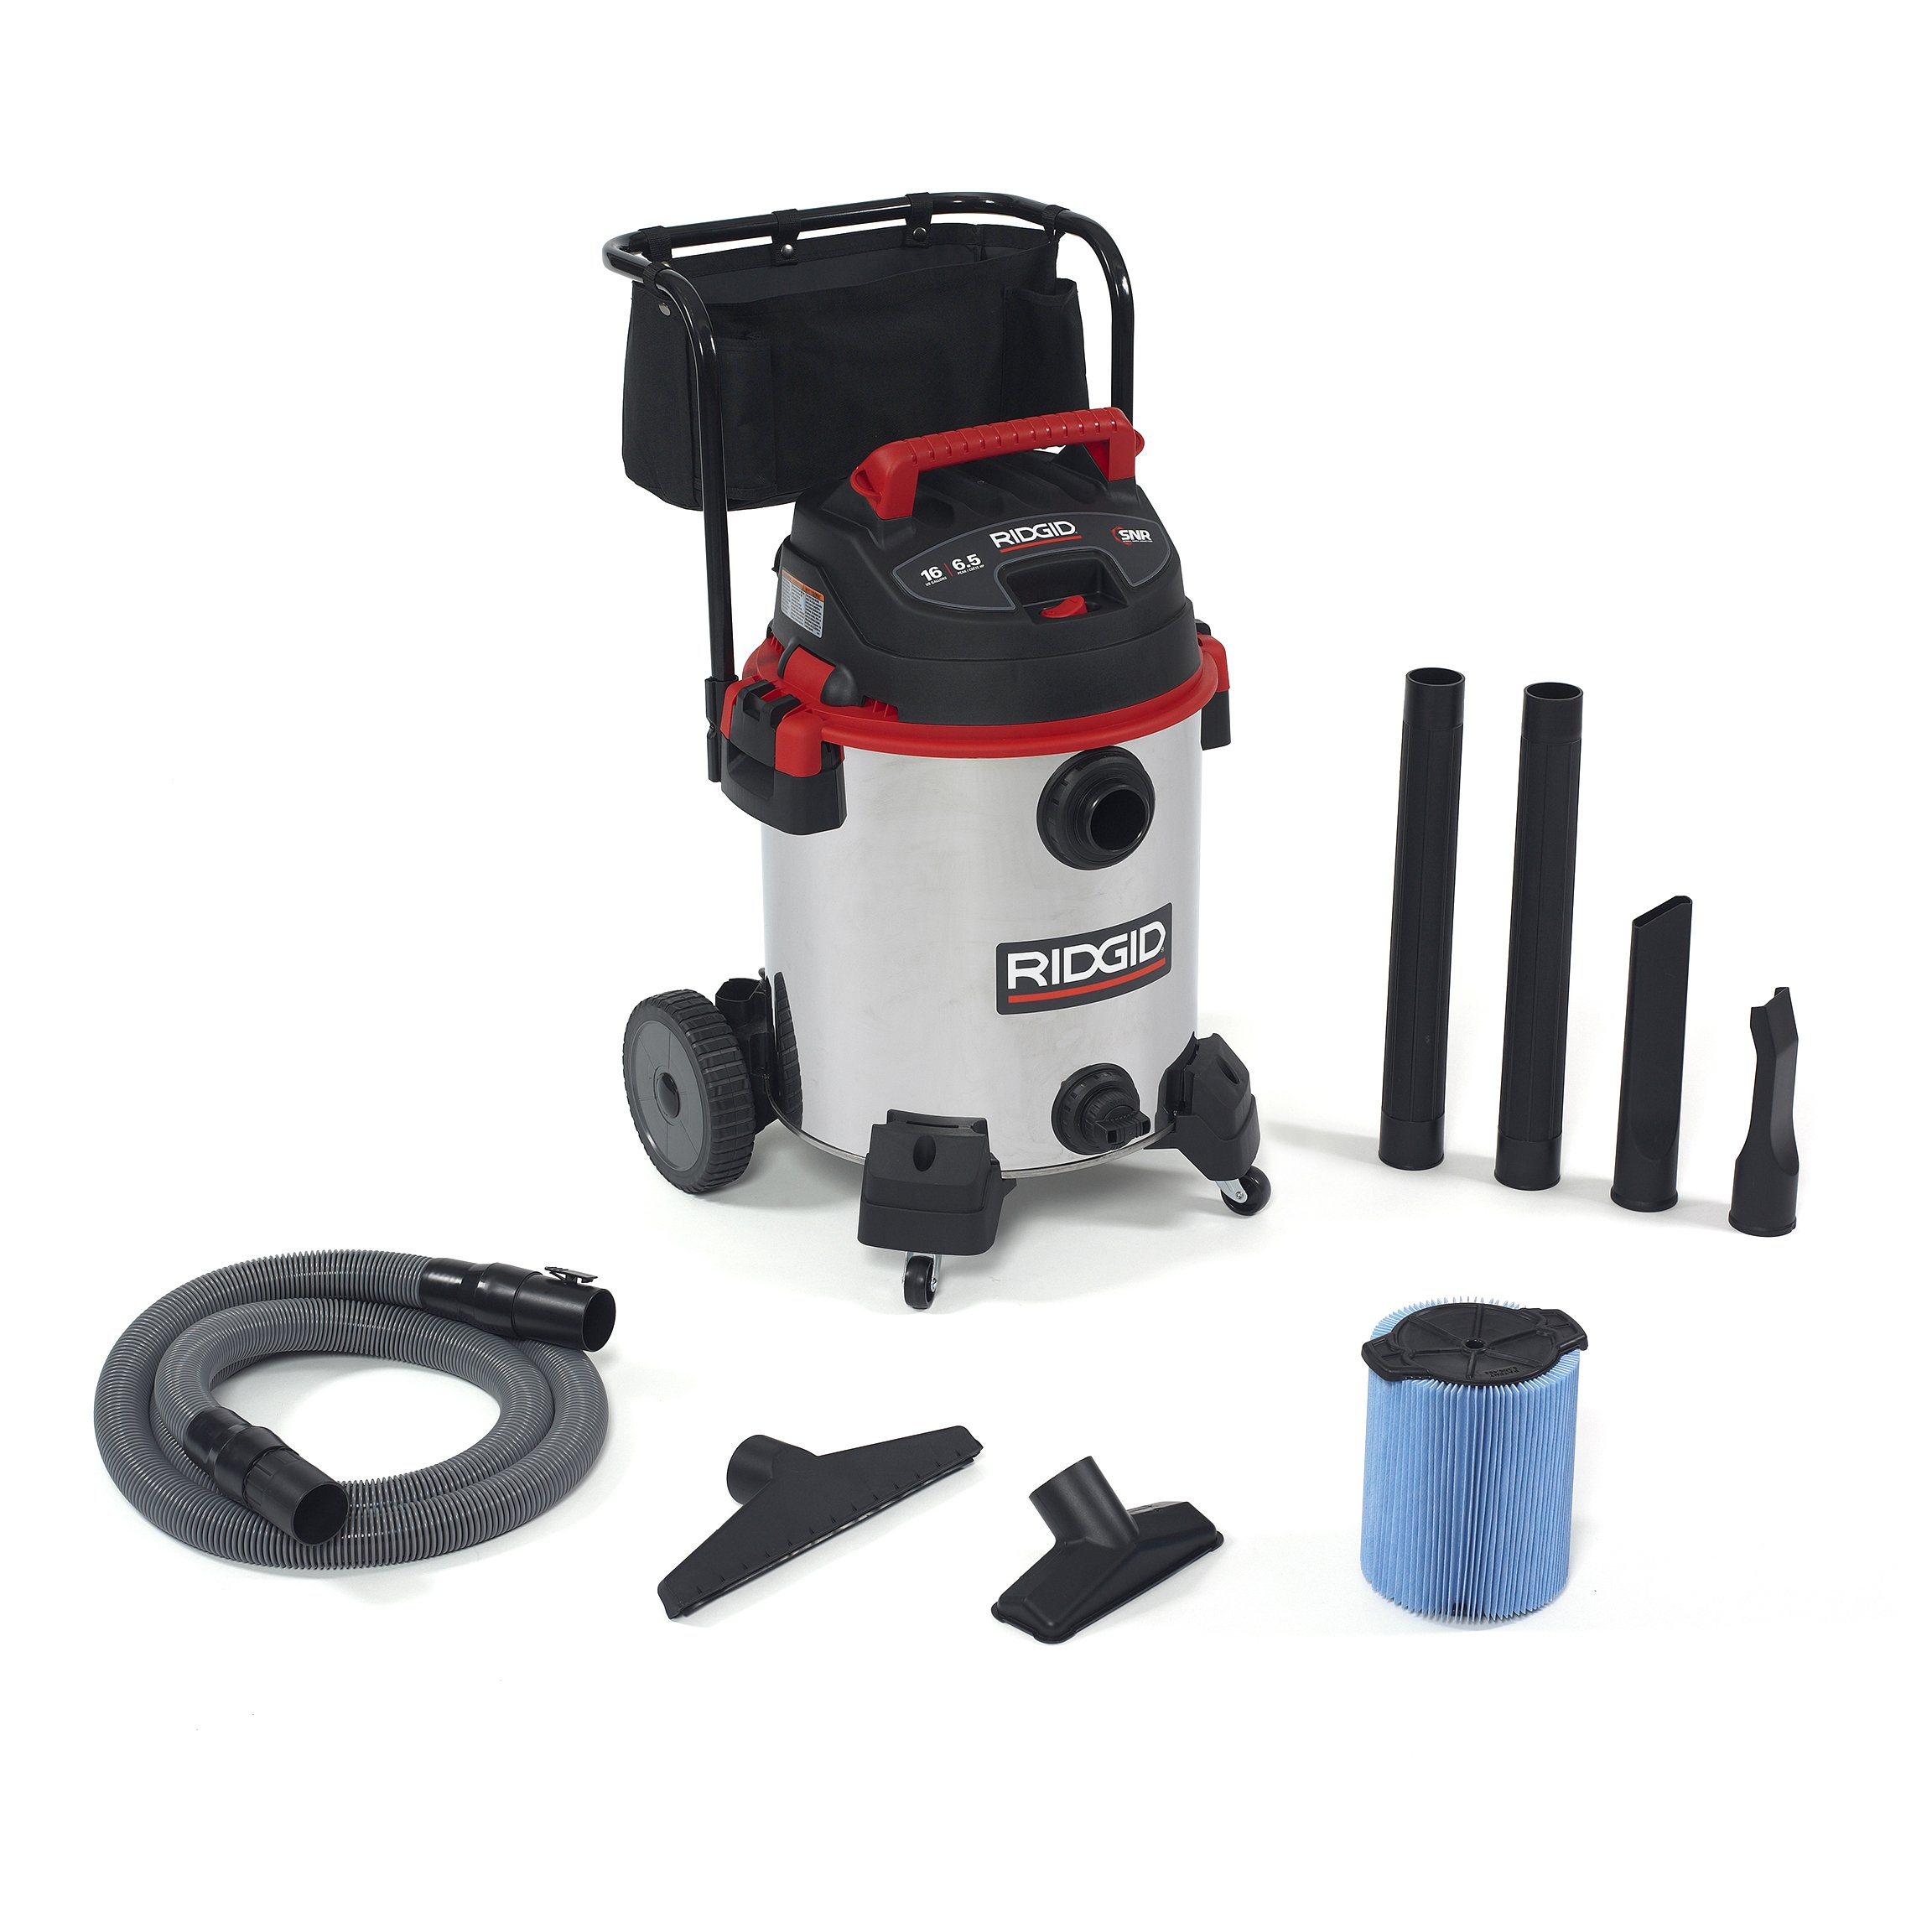 Ridgid 50353 1610RV Wet/Dry Vacuum, Stainless Steel, 16 gal, Red